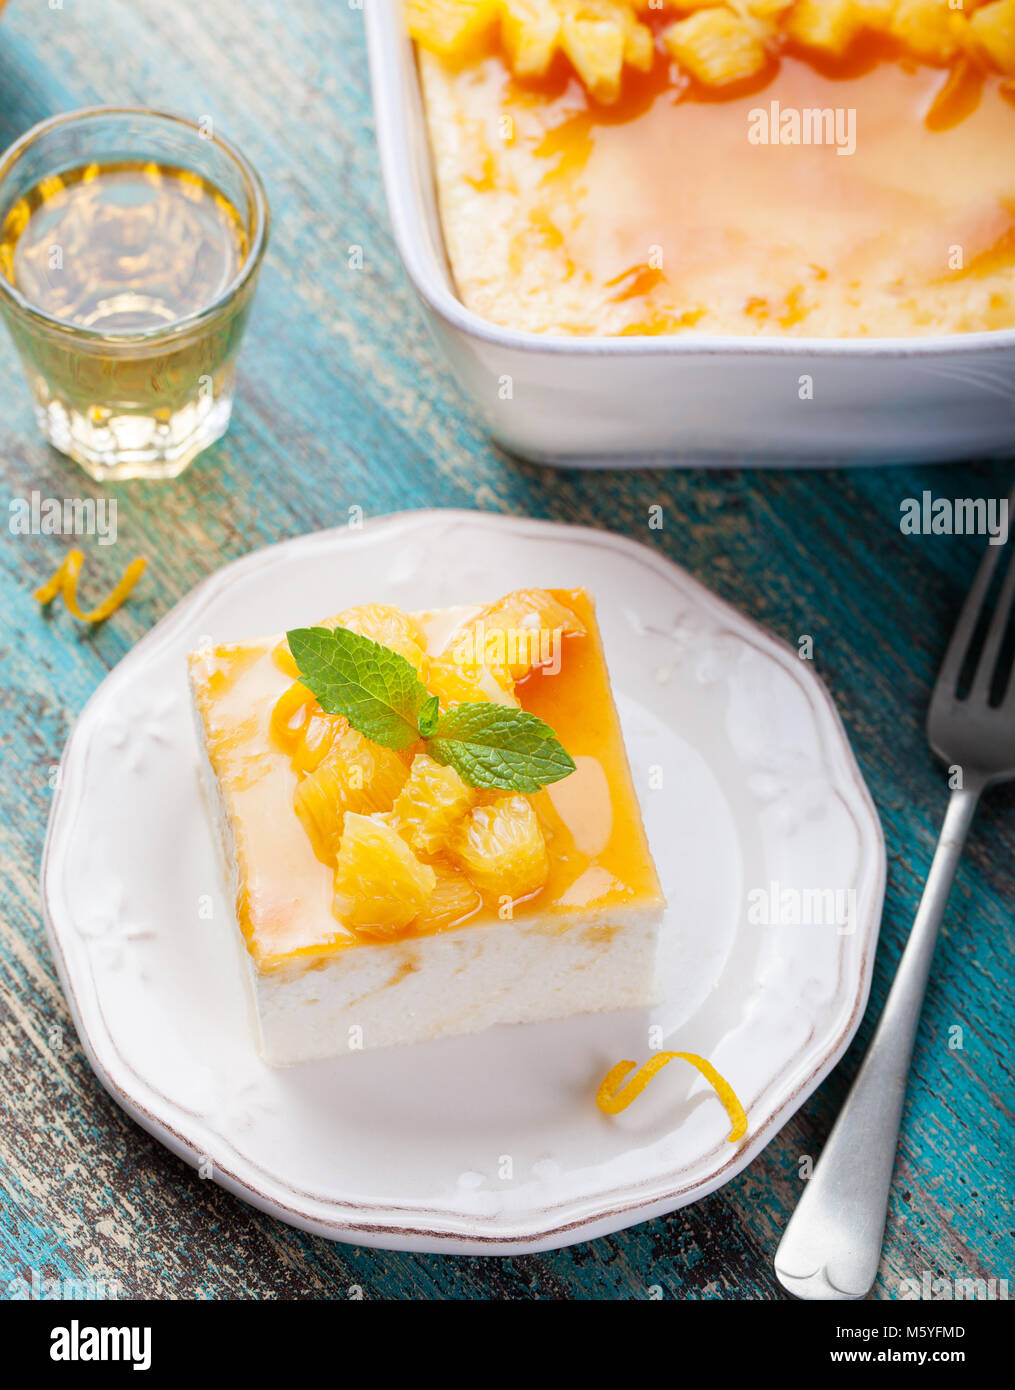 Awesome Cheesecake Cottage Cheese Pudding With Fresh Oranges And Download Free Architecture Designs Intelgarnamadebymaigaardcom